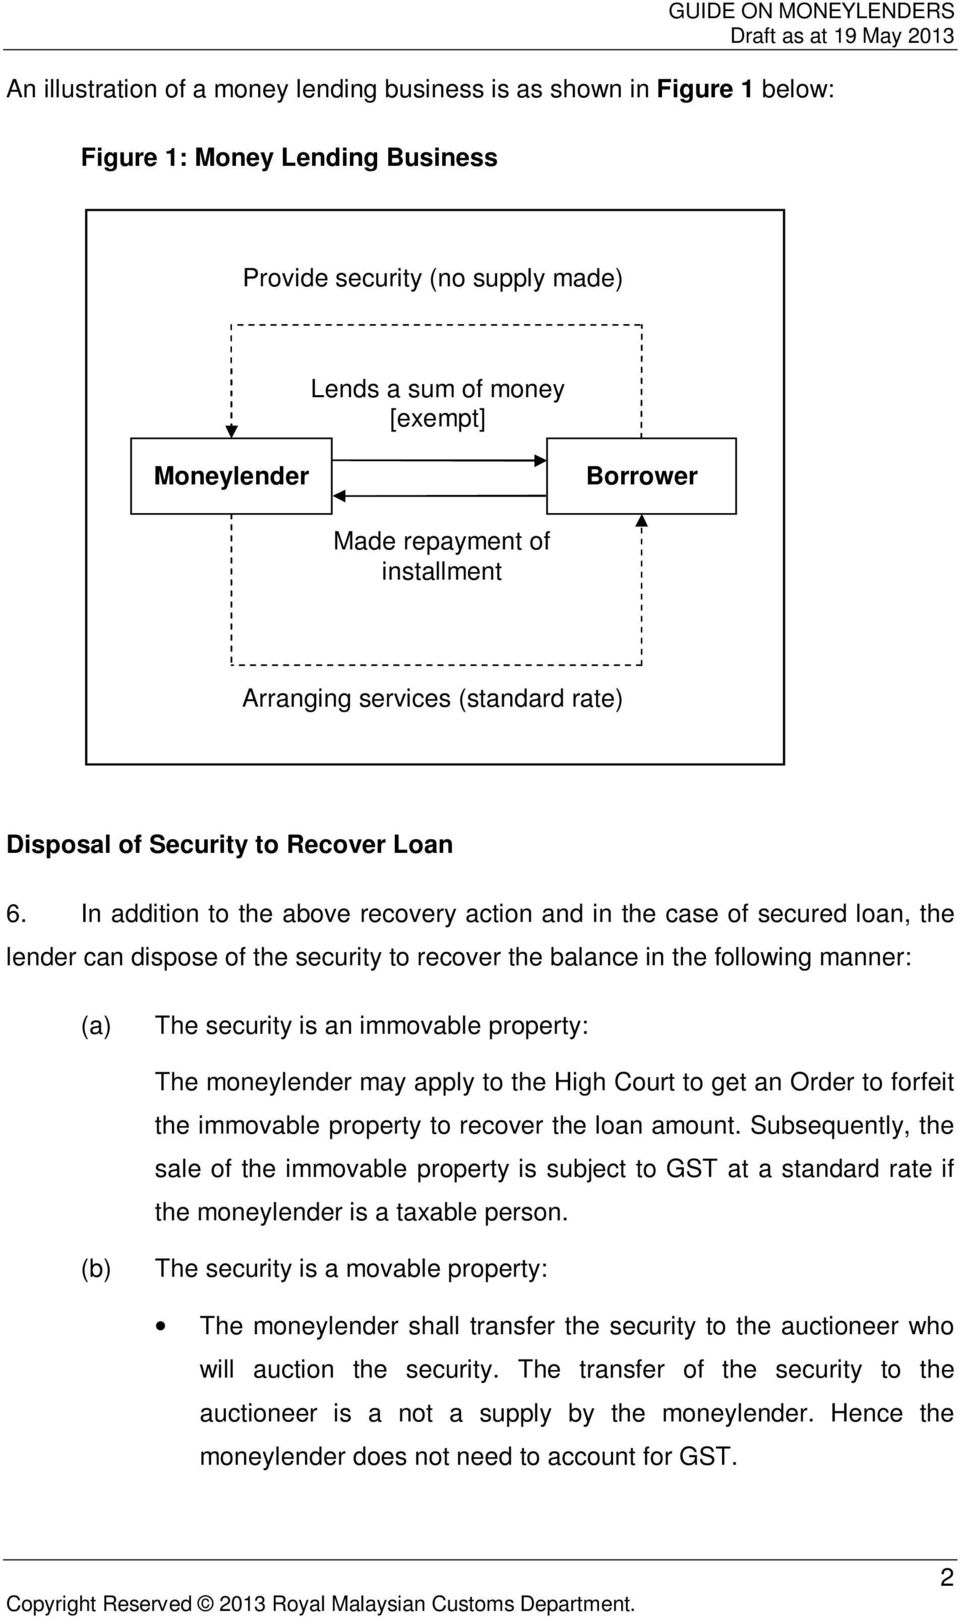 In addition to the above recovery action and in the case of secured loan, the lender can dispose of the security to recover the balance in the following manner: (a) The security is an immovable